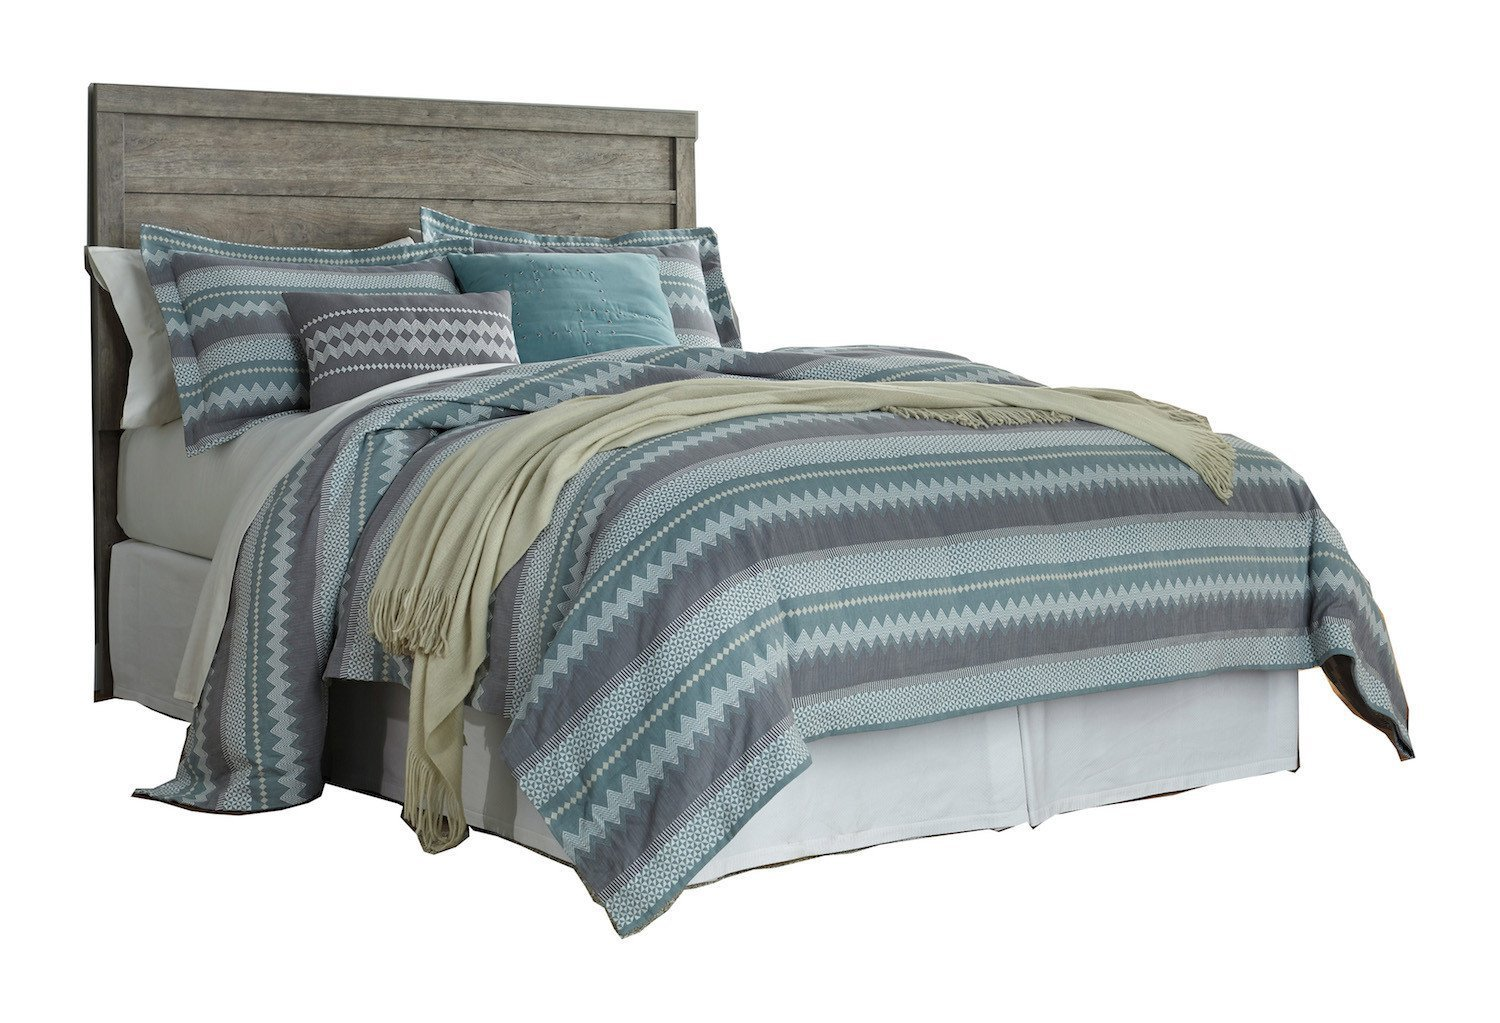 Ashley Culverbach Queen Panel Headboard Weathered Driftwood in Gray